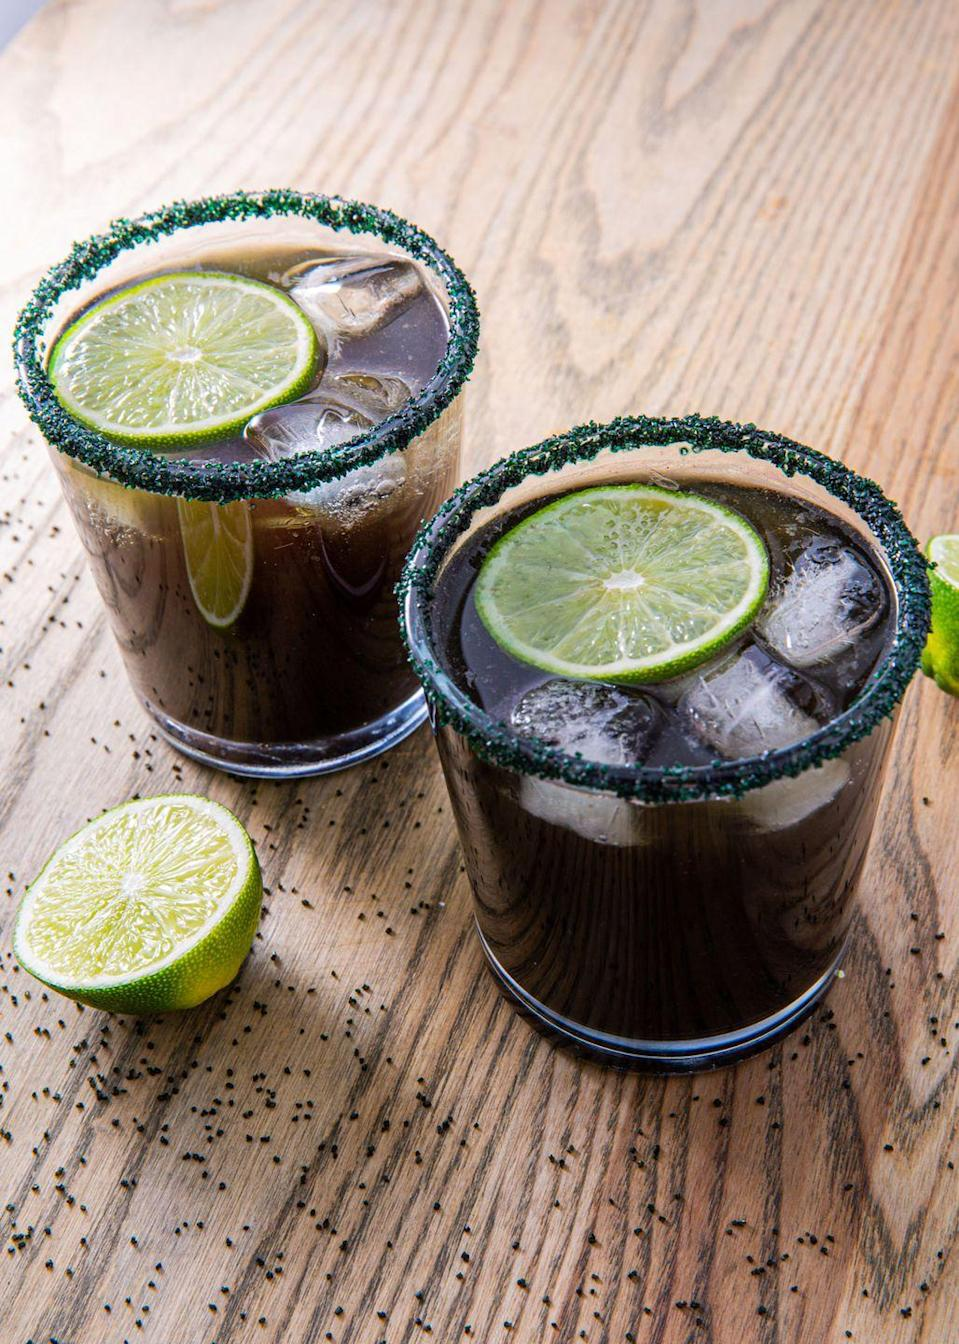 "<p>Let's get witch-faced.</p><p>Get the recipe from <a href=""https://www.delish.com/cooking/recipe-ideas/recipes/a55953/black-magic-margaritas-recipe/"" rel=""nofollow noopener"" target=""_blank"" data-ylk=""slk:Delish"" class=""link rapid-noclick-resp"">Delish</a>. </p>"